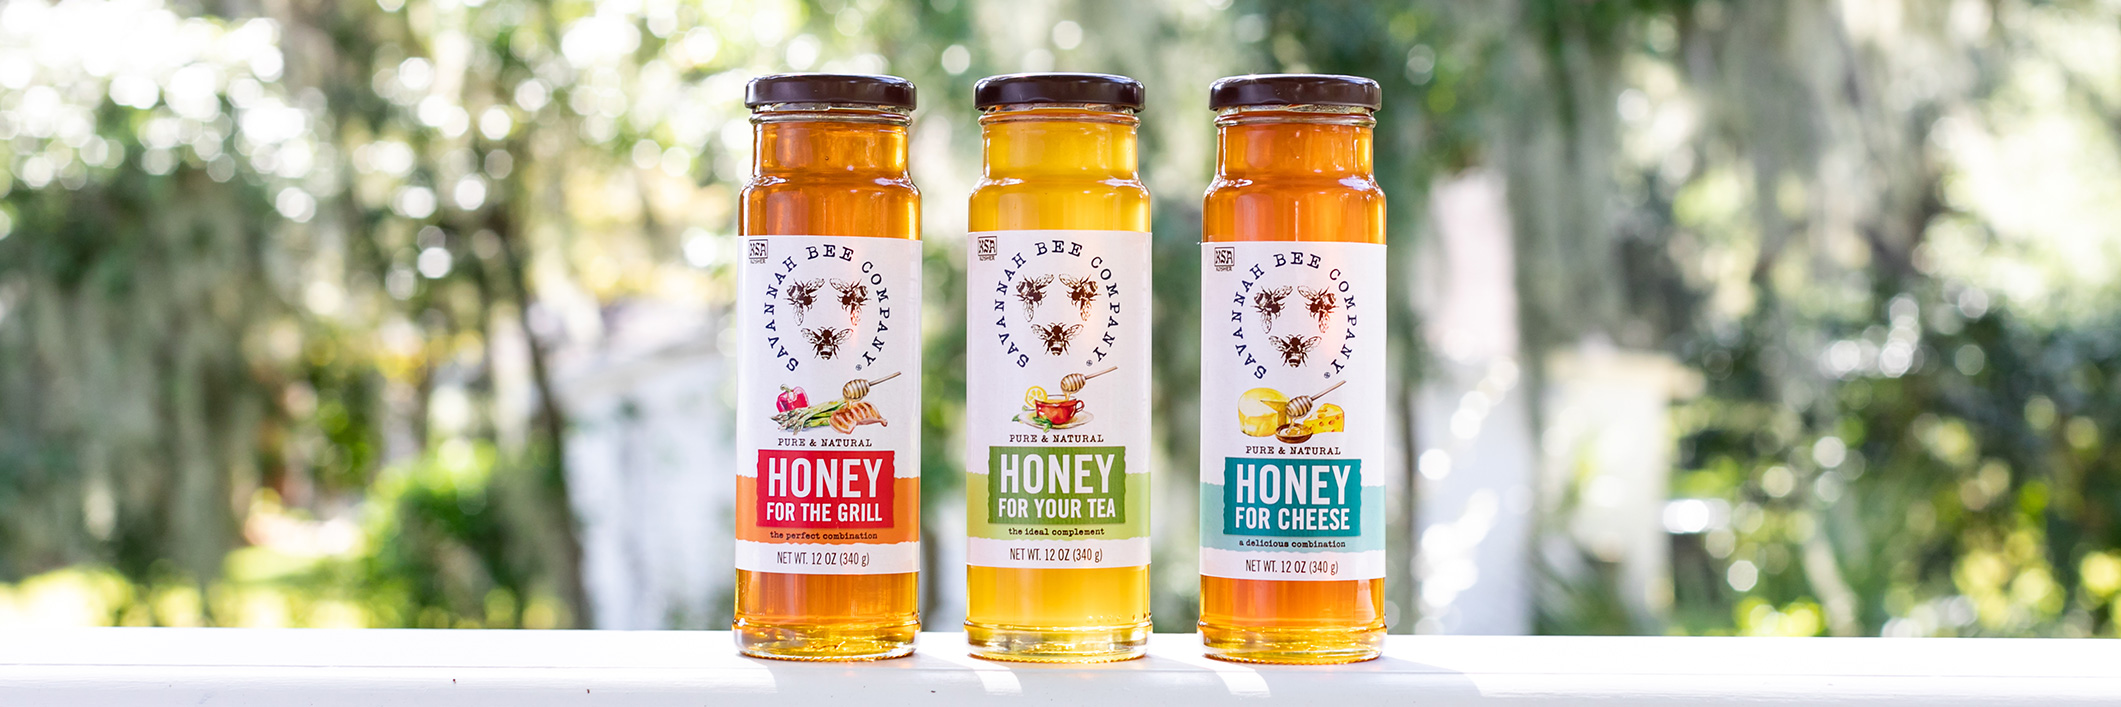 sbc-everyday-honey-collection-carousel.jpg